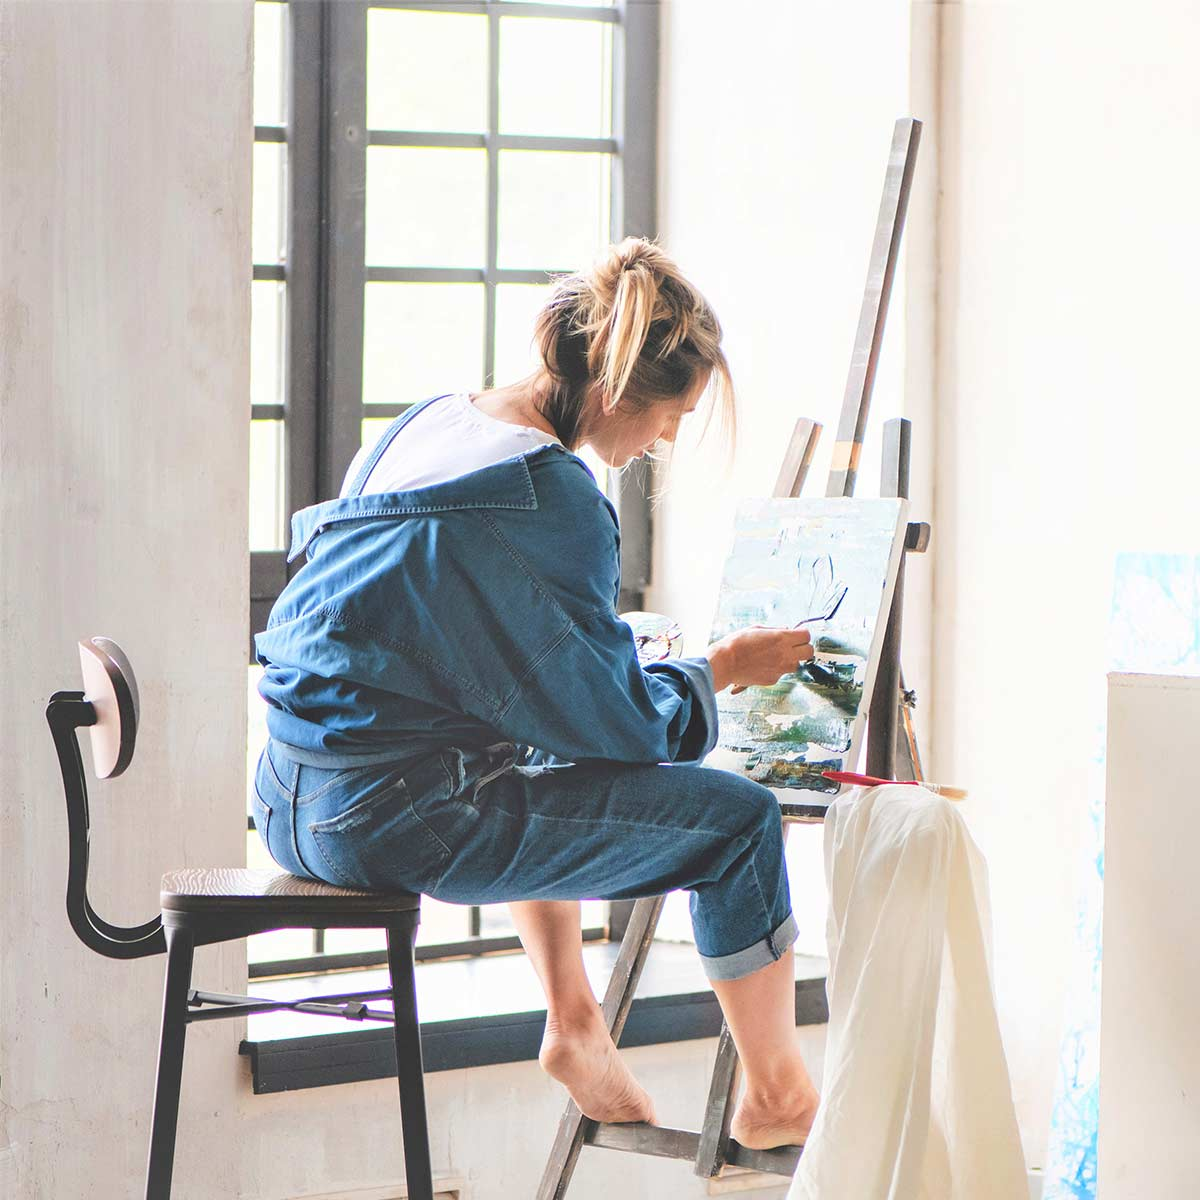 Blonde woman in denim clothing painting in sunny home studio.